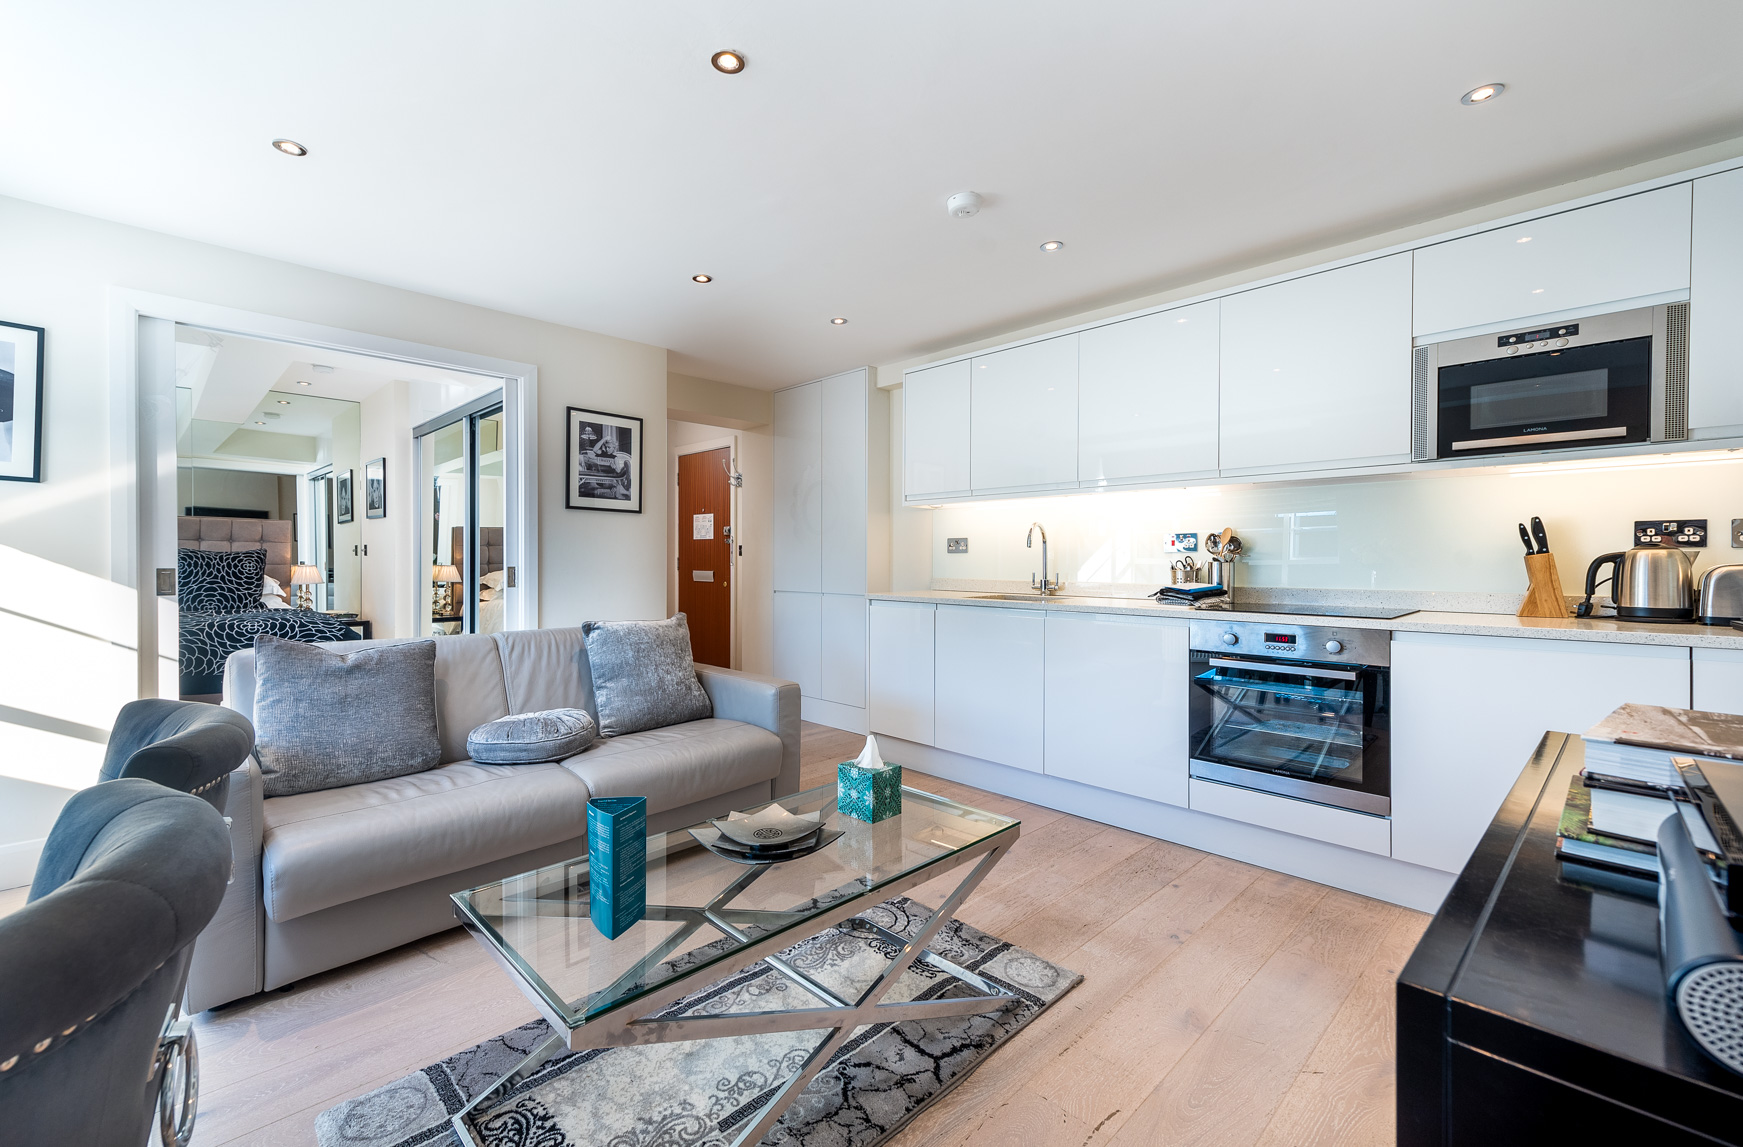 Kitchen at Nell Gwynn House Accommodation, Chelsea, London - Citybase Apartments